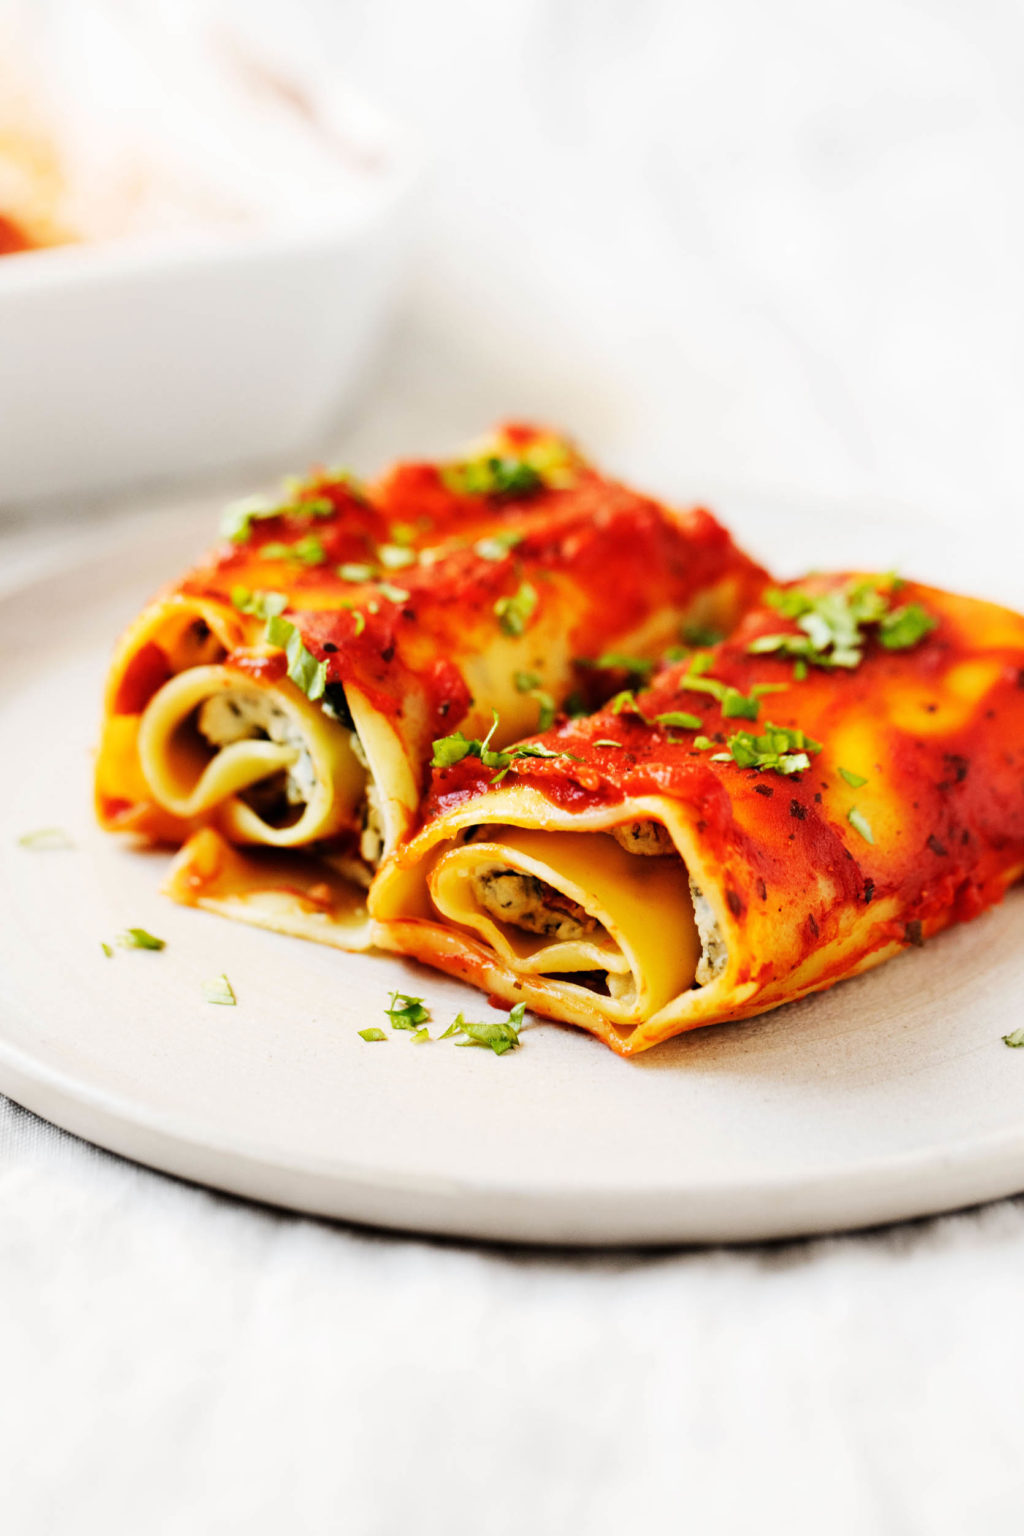 Two long, flat noodles have been filled with plant-based ricotta and spinach, topped with sauce, and rolled up.